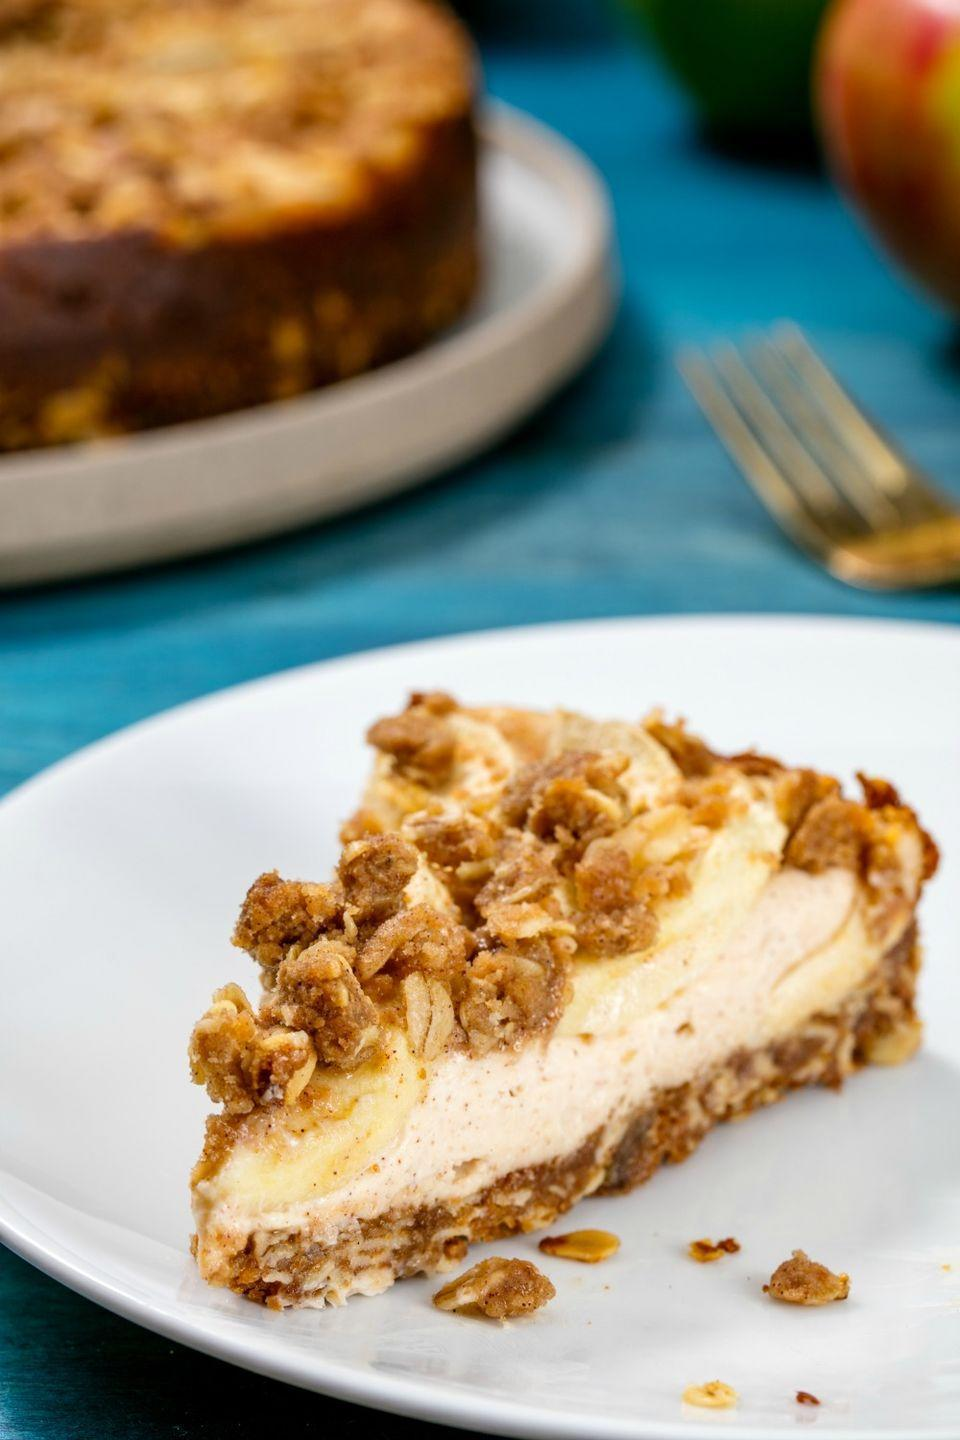 """<p>The crumble topping is the clincher on this dreamy dessert hybrid.</p><p>Get the recipe from <a href=""""https://www.delish.com/cooking/recipe-ideas/recipes/a50132/apple-pie-cheesecake-recipe/"""" rel=""""nofollow noopener"""" target=""""_blank"""" data-ylk=""""slk:Delish"""" class=""""link rapid-noclick-resp"""">Delish</a>.</p>"""